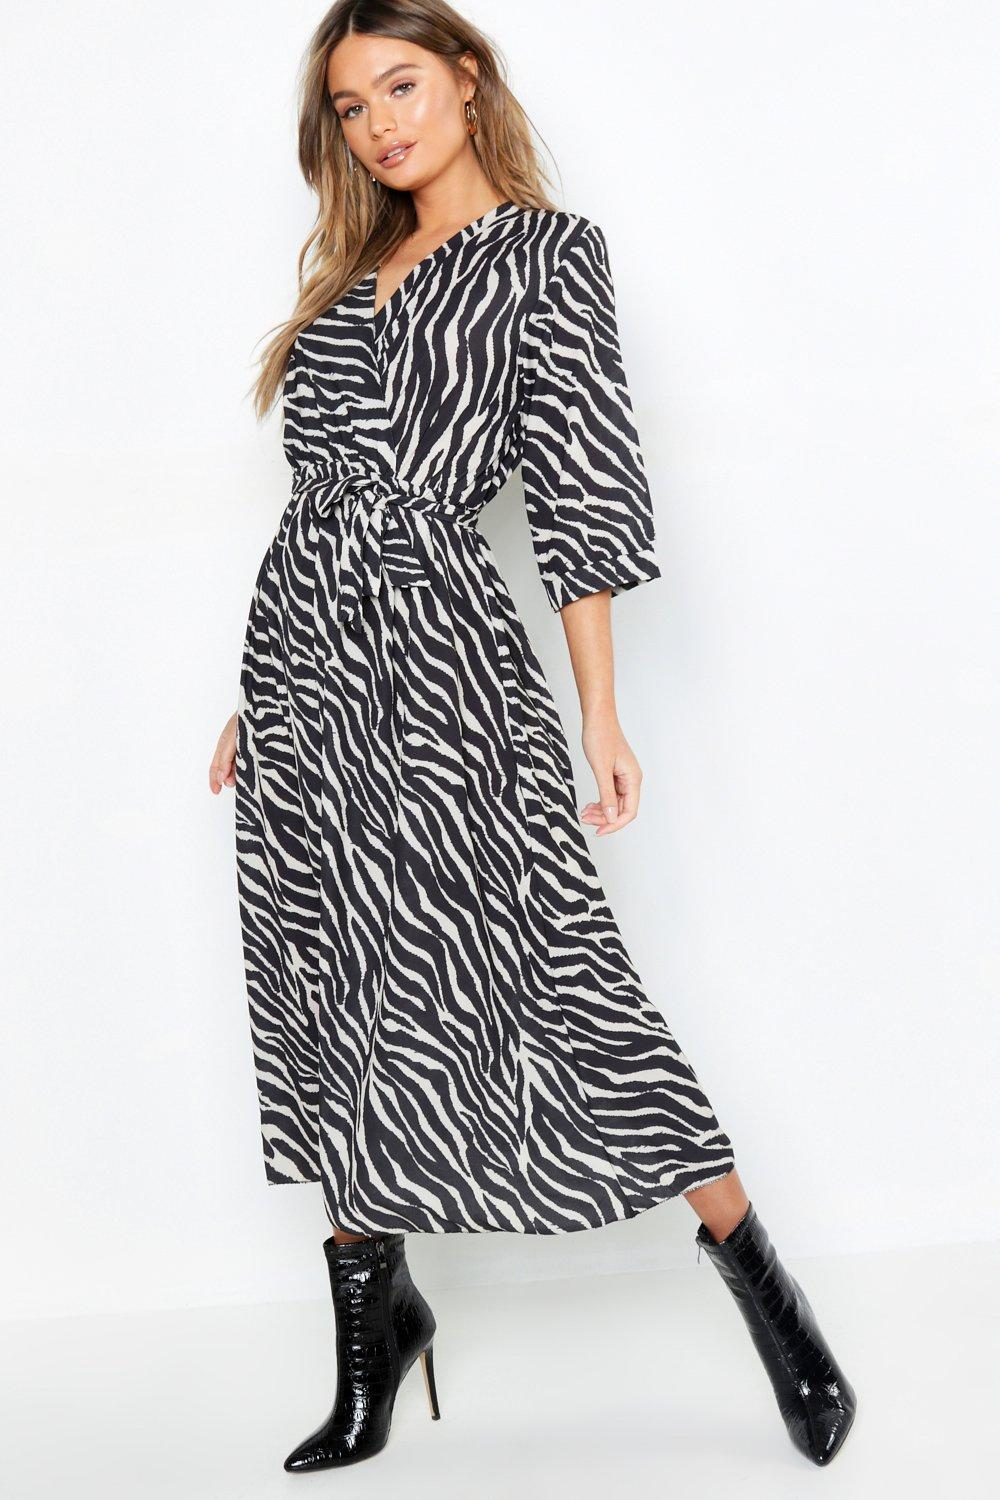 e6effc4b8340 Lyst - Boohoo Zebra Wrap Front Belted Midi Dress in Black